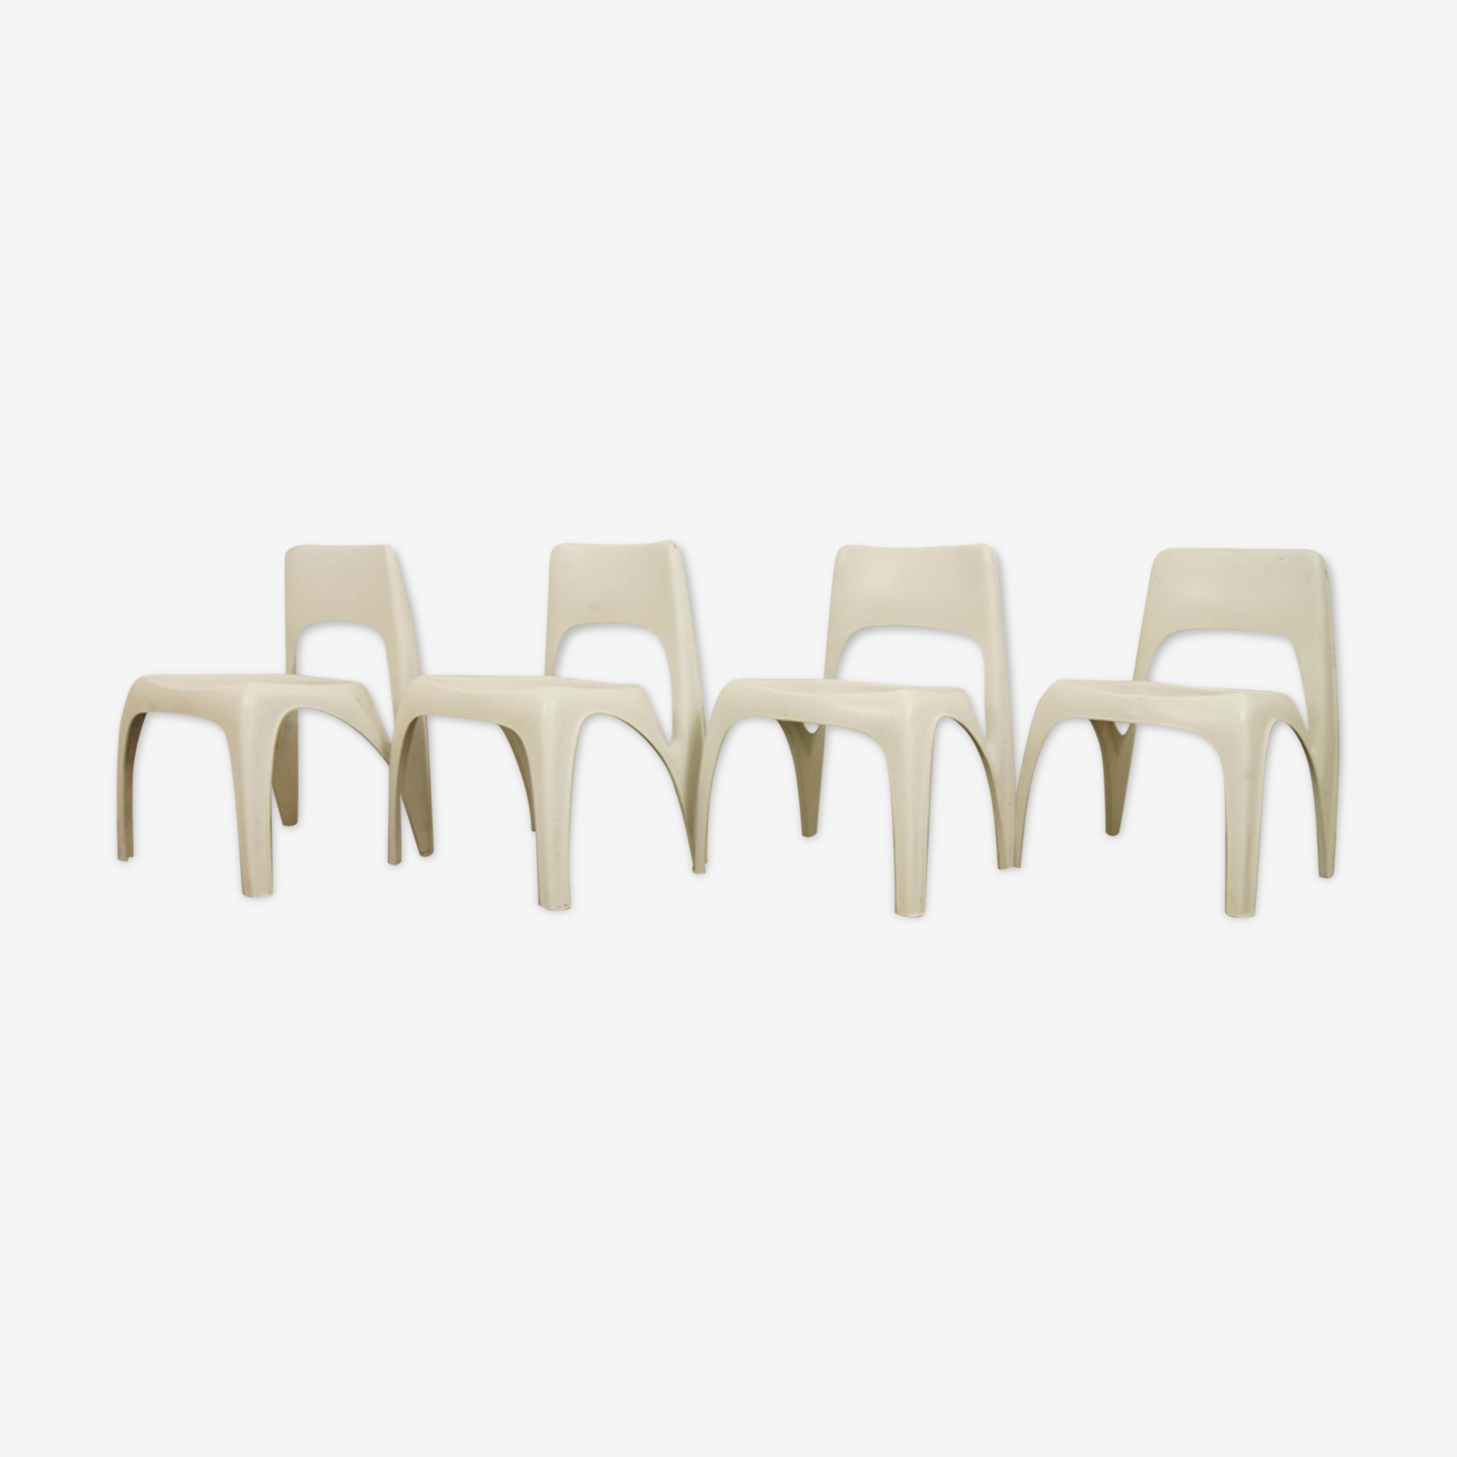 Set of 4 chairs by Preben Fabricius to Interplast, 1970